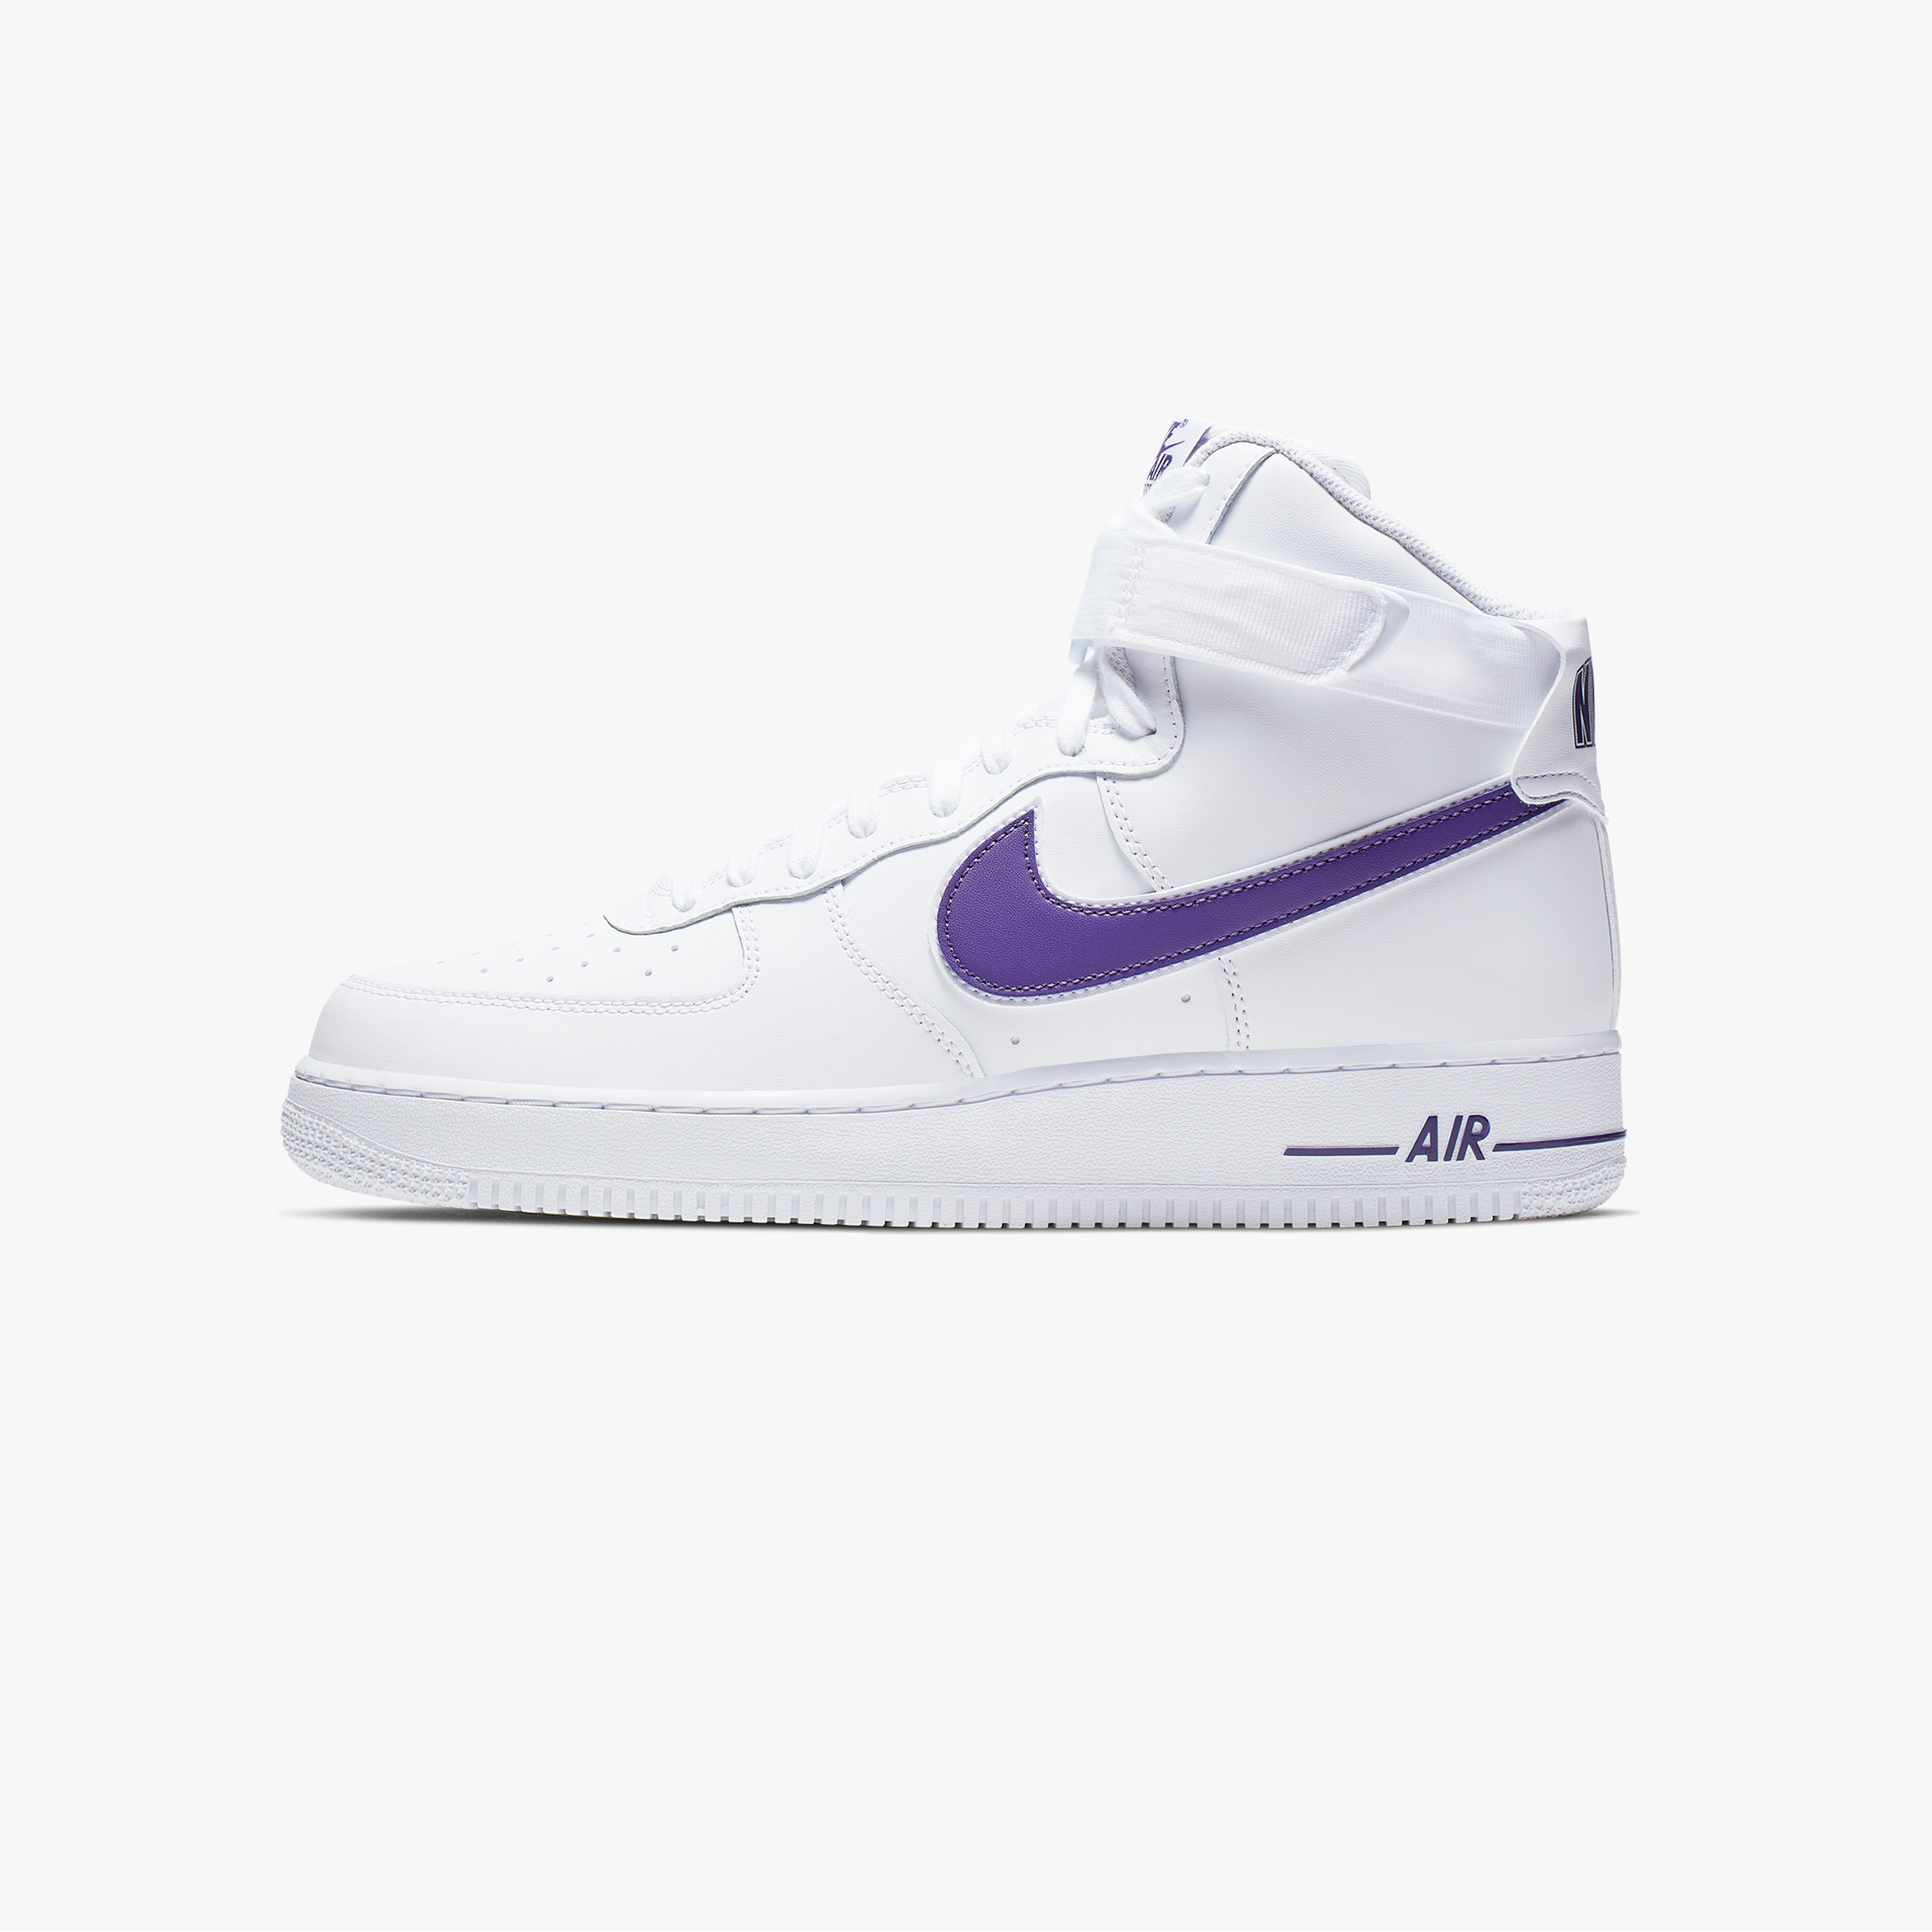 Nike Air Force 1 High 07 3 - At4141-103 - SNS   sneakers ...